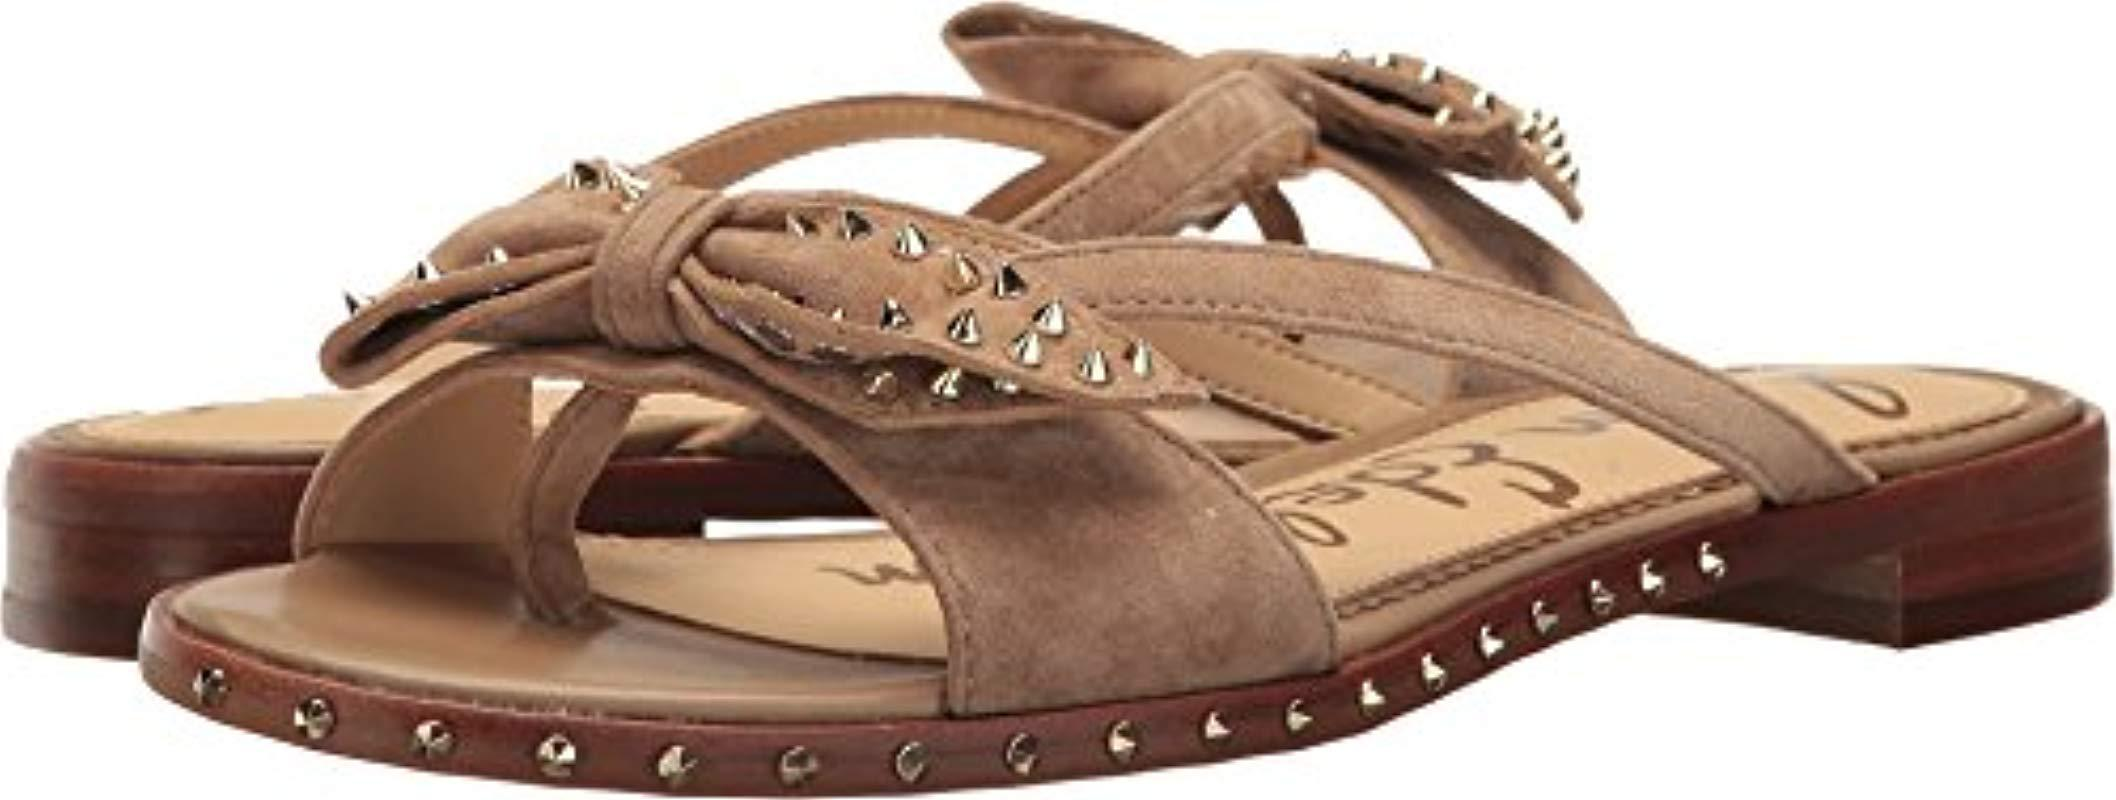 50de359dea3e Lyst - Sam Edelman Dariel Sandal in Natural - Save 9%